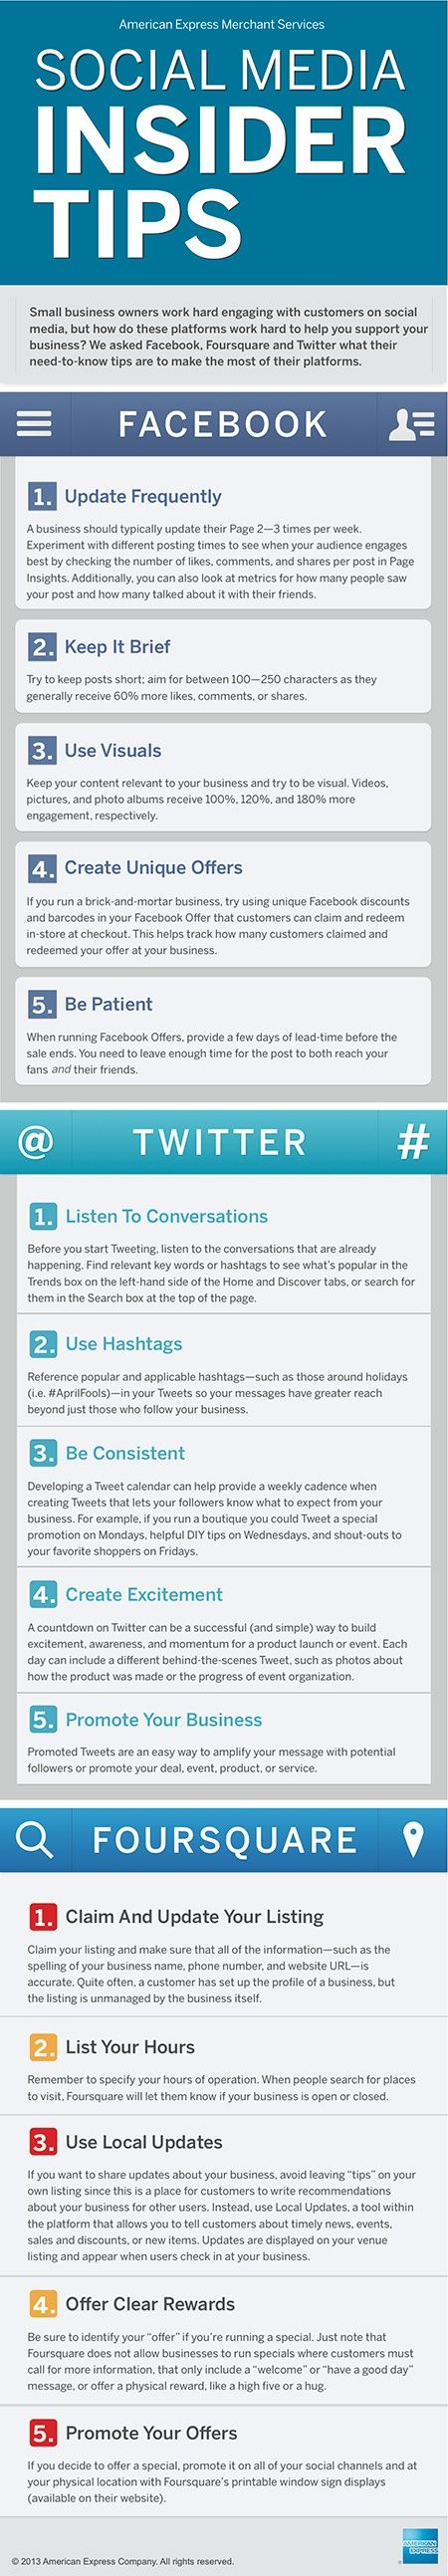 Social Media Tips You Have To Know #SEO #socialmedia #infographic